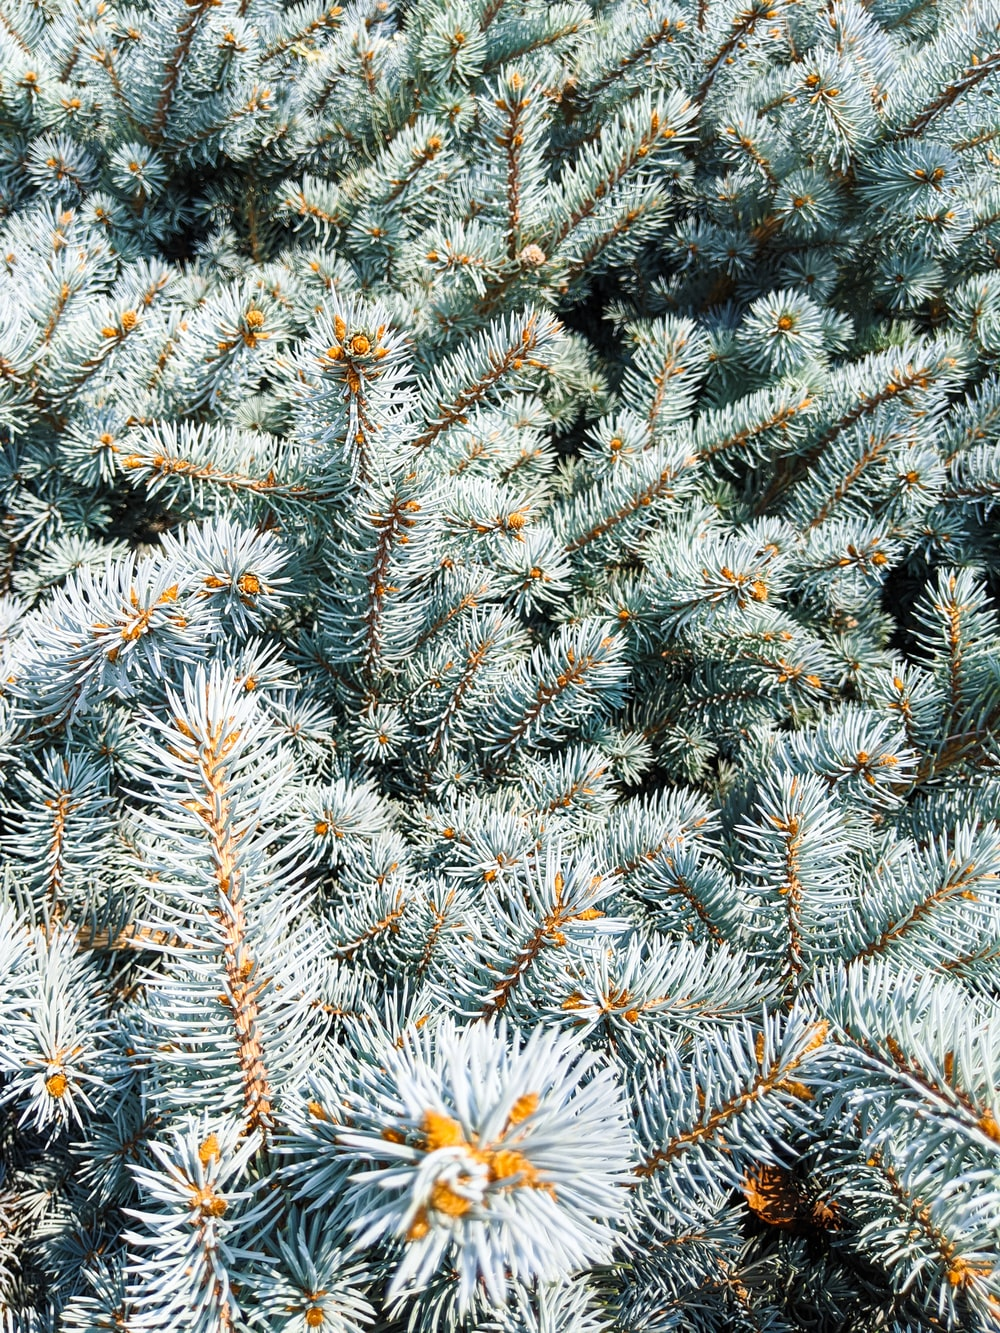 white and yellow flowers on green pine tree